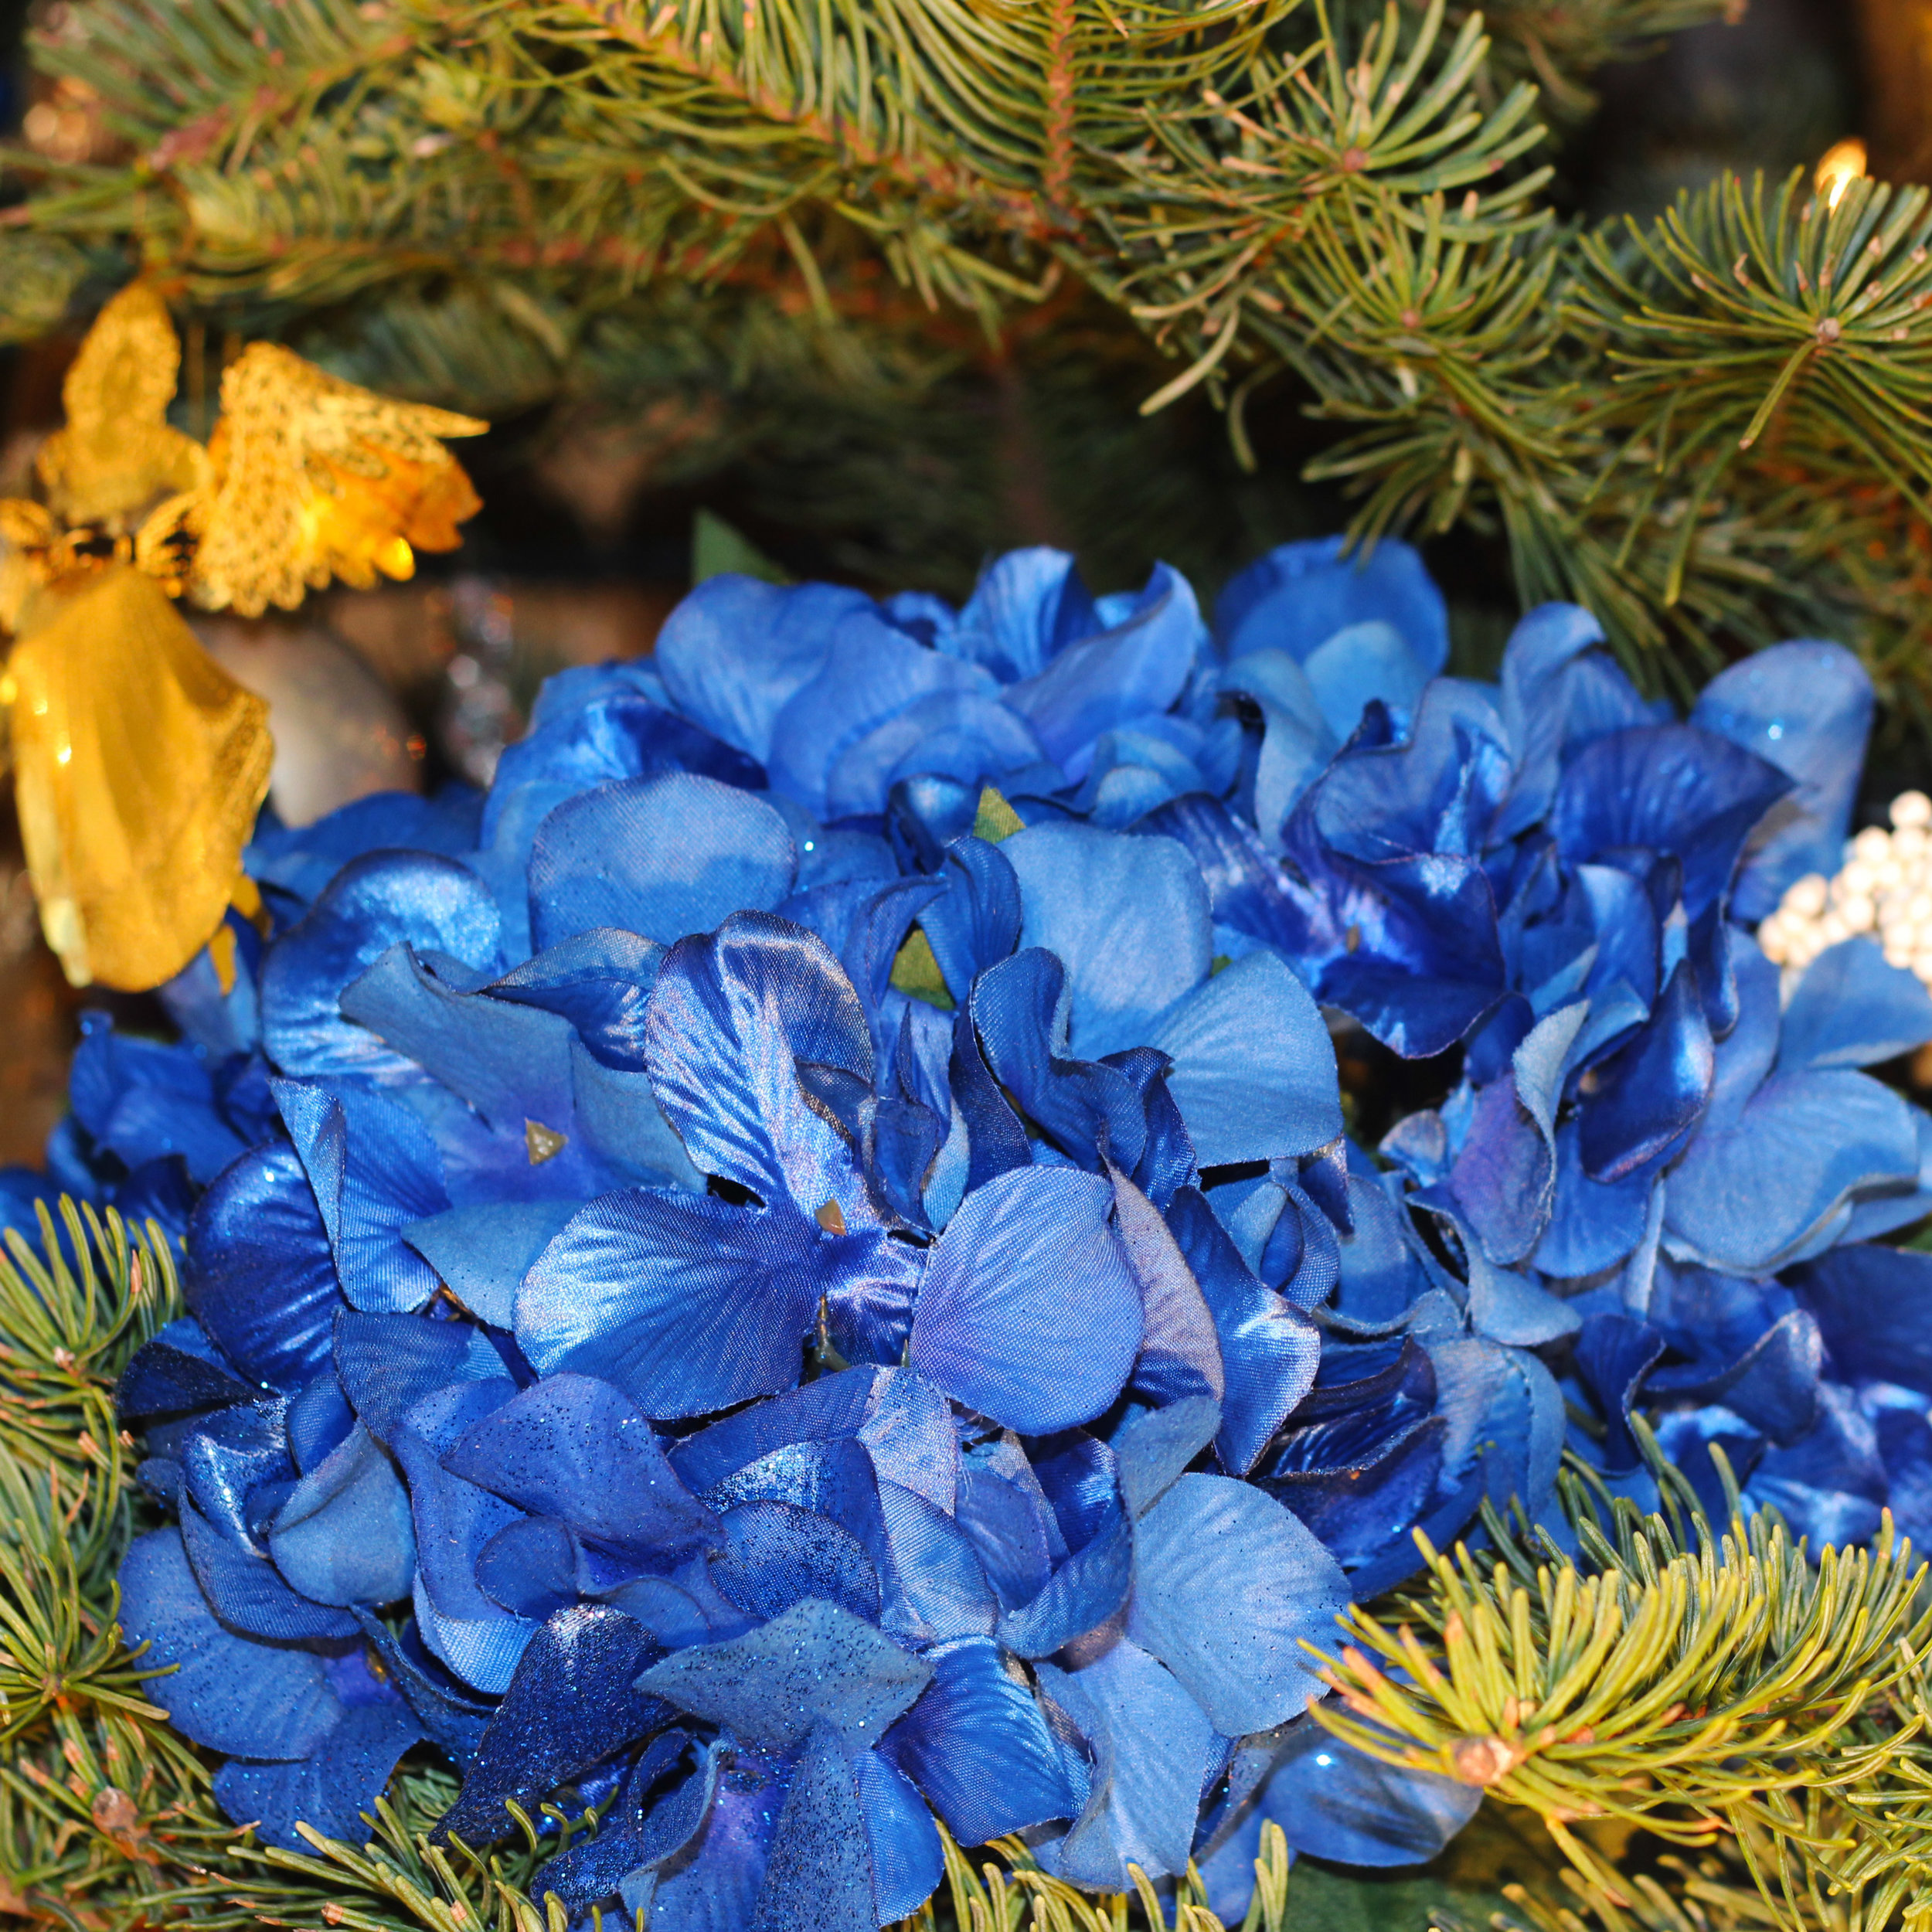 Next lay the hydrangeas on top of the boughs.